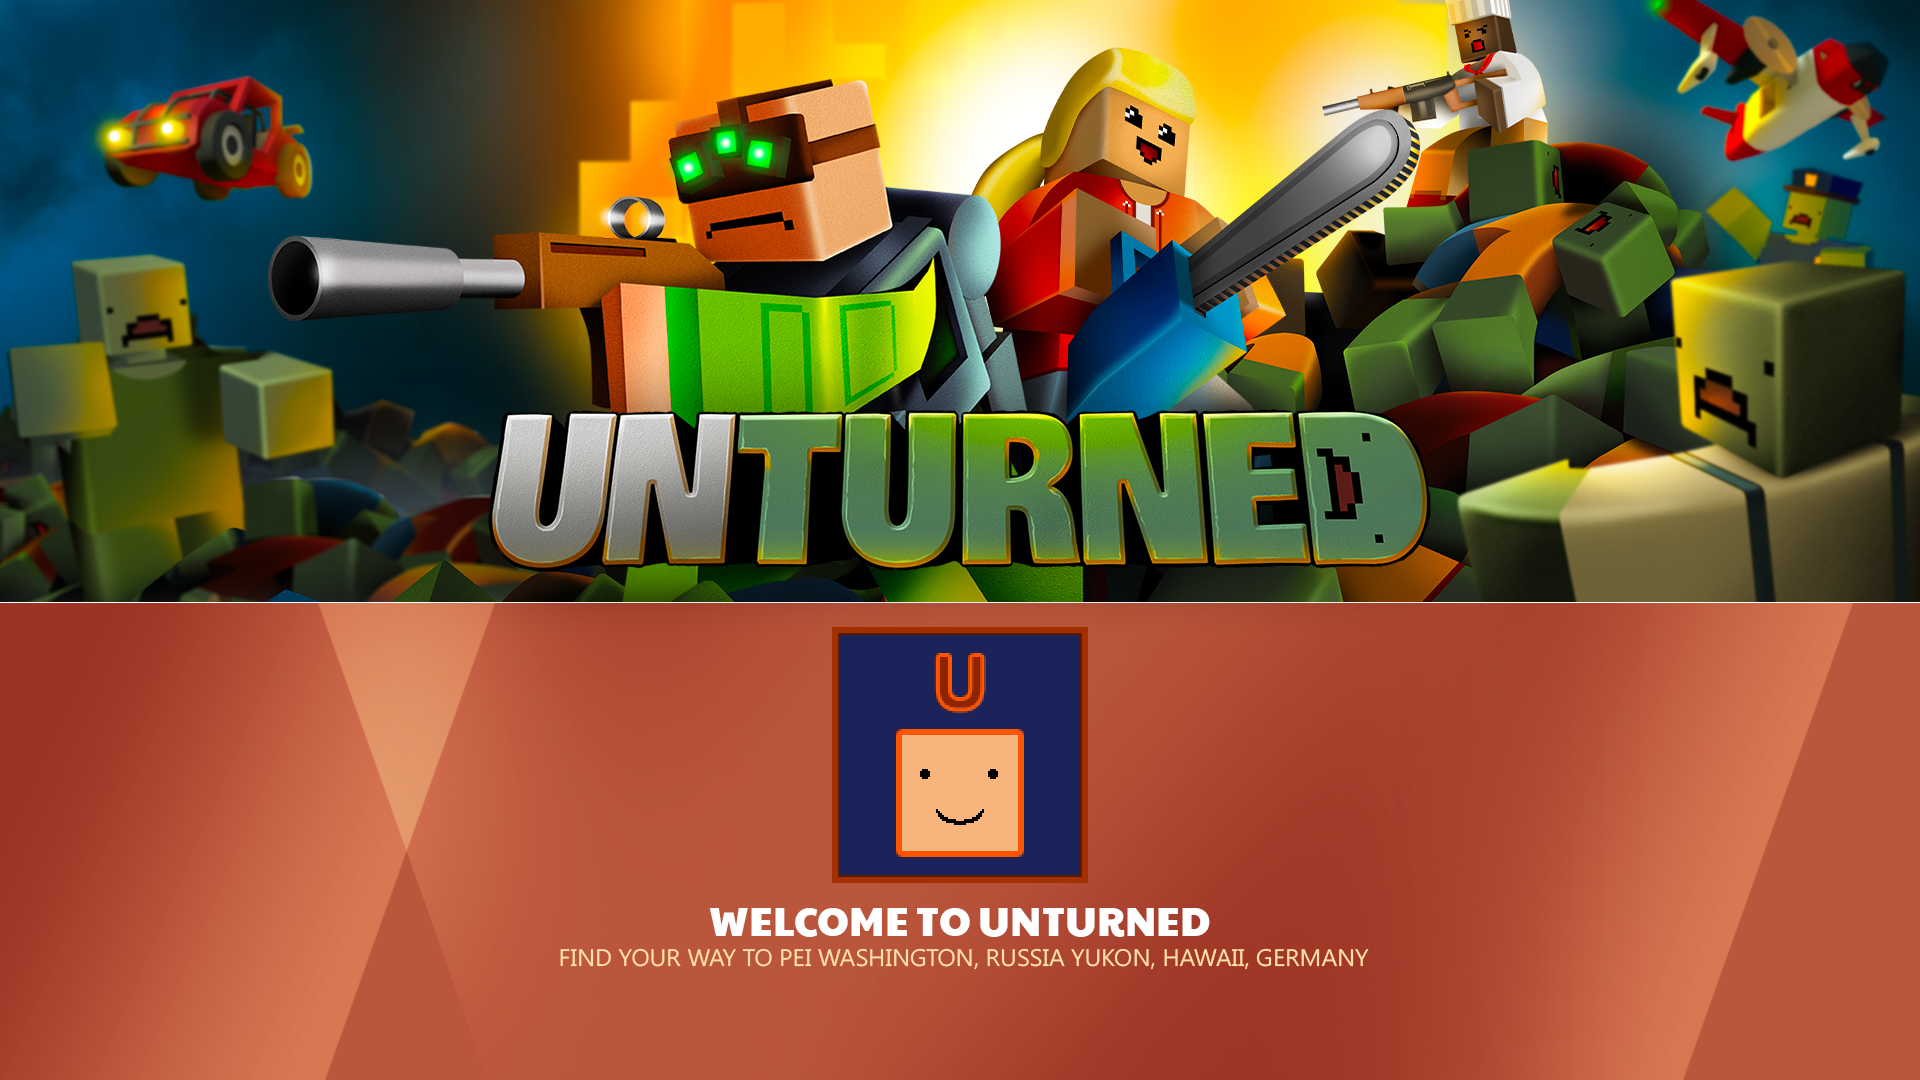 Icon for Welcome to Unturned